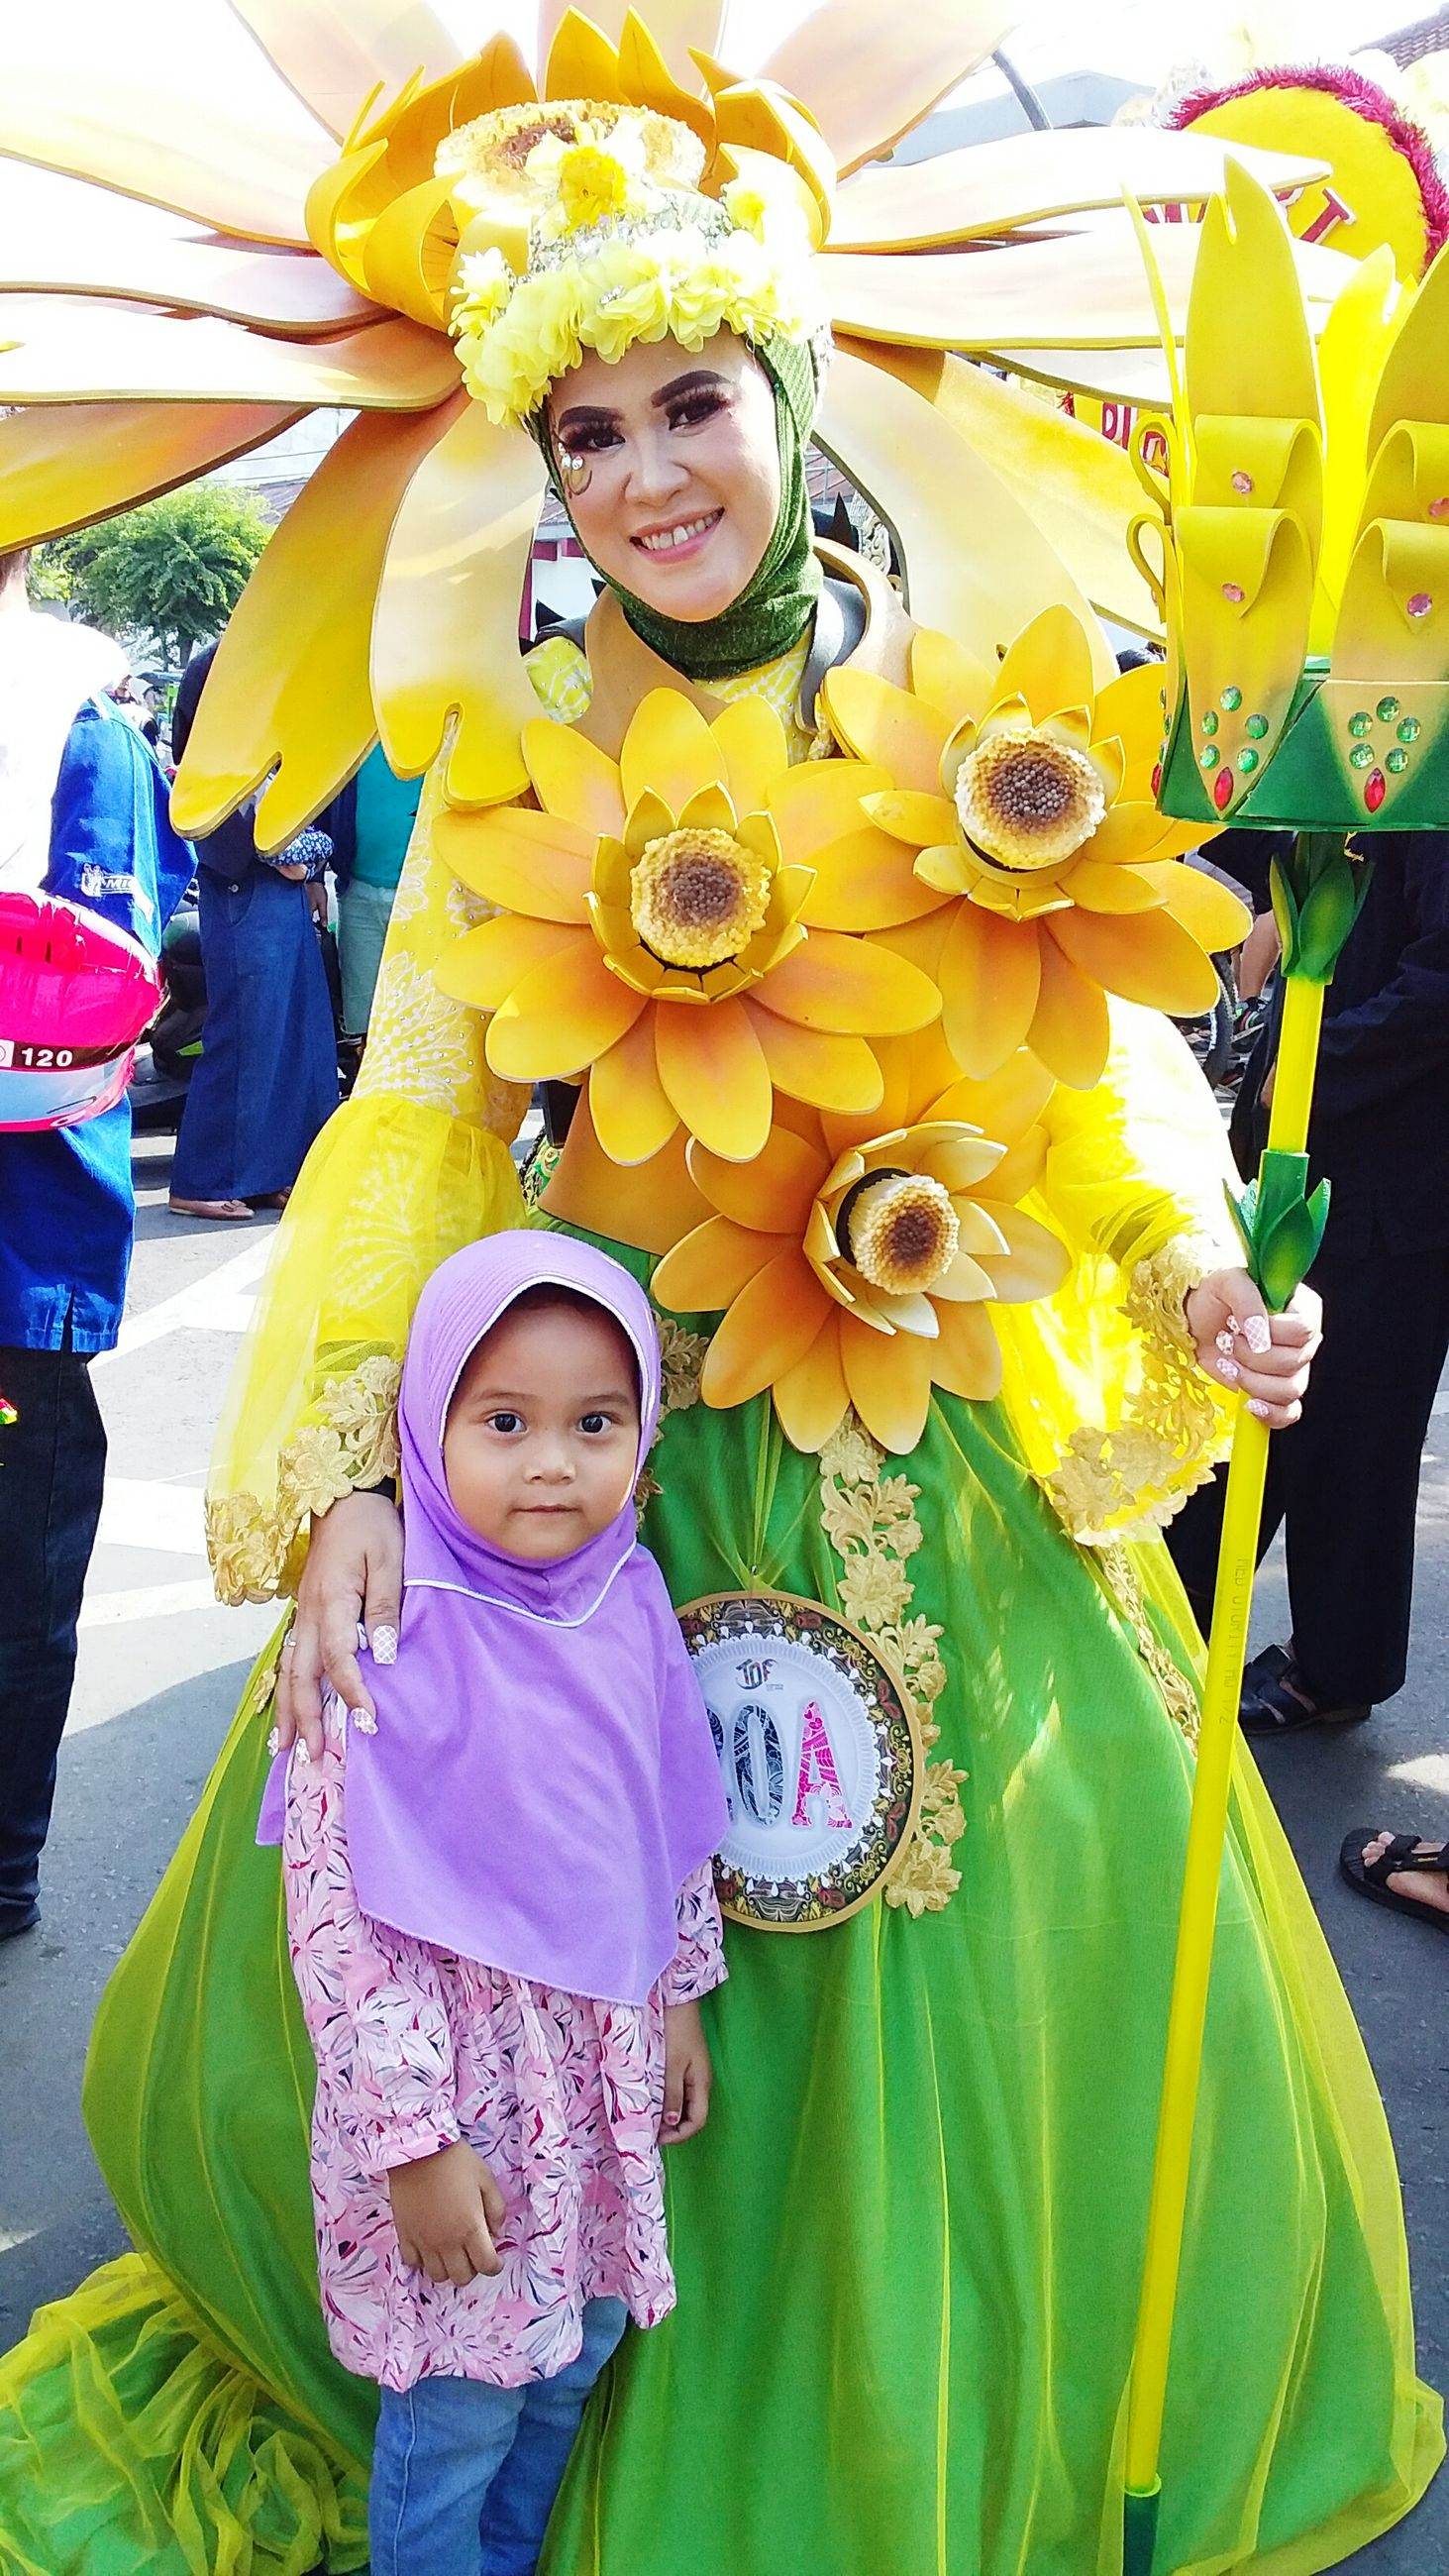 Portrait of woman wearing costume standing by daughter during traditional festival